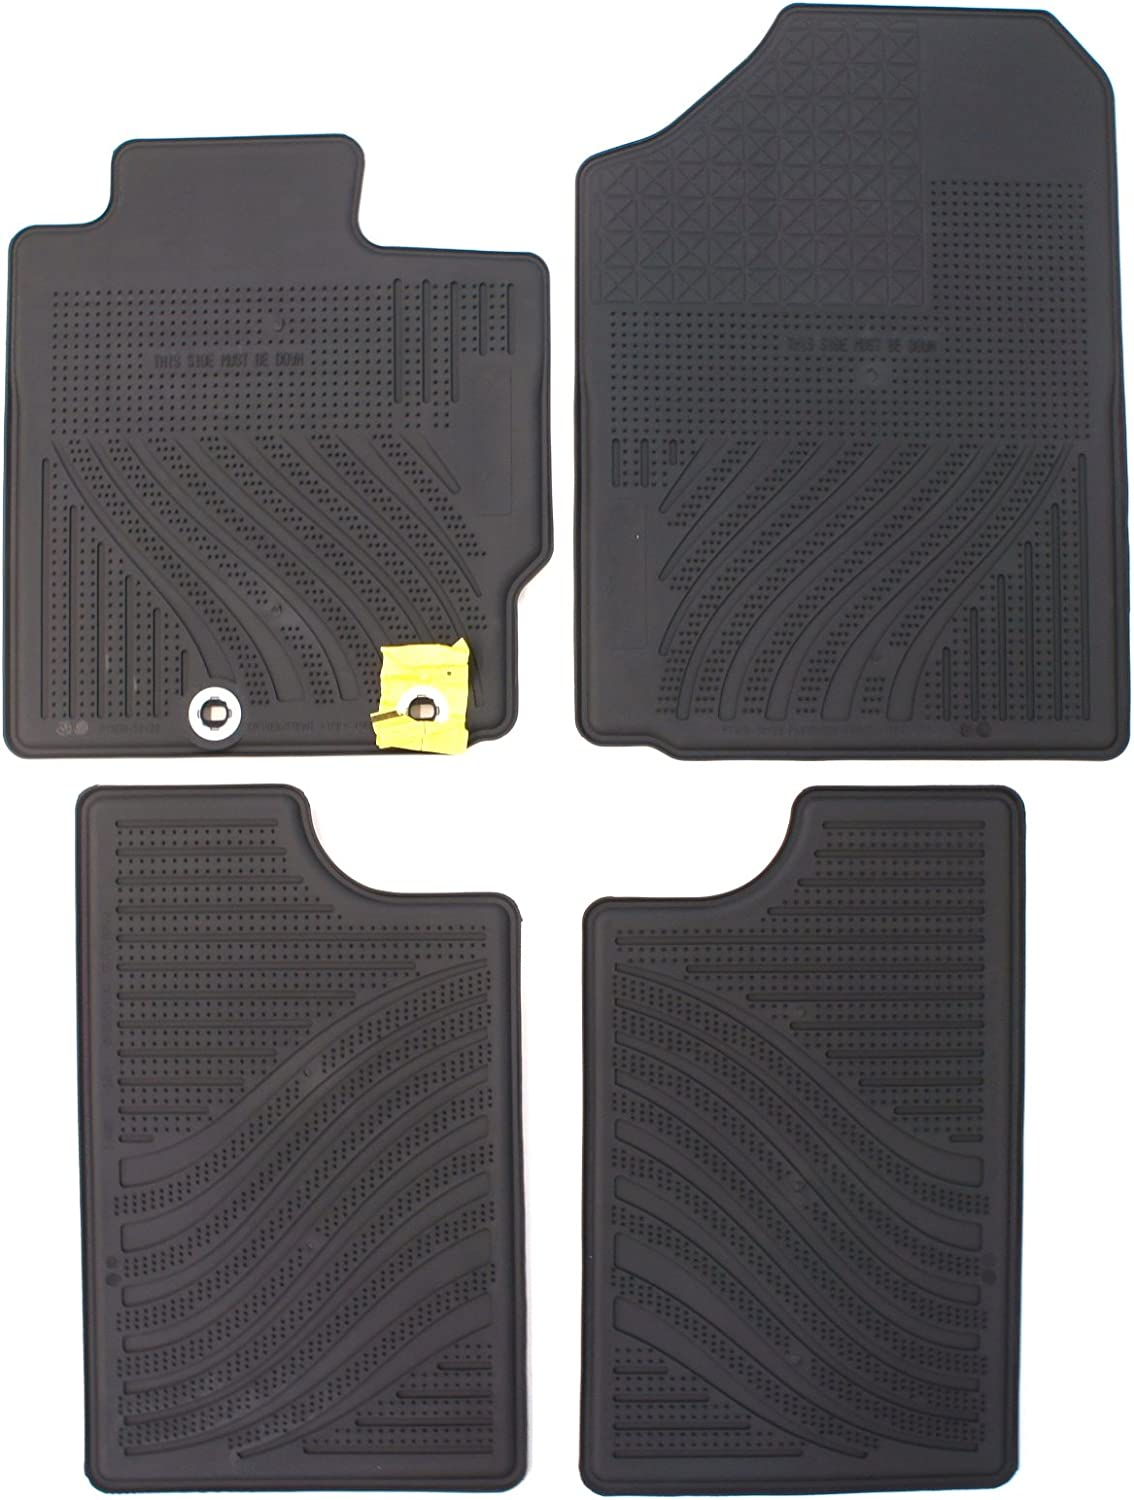 Heavy Duty Total Protection Black Van Trucks SUV PantsSaver Custom Fit Automotive Floor Mats for Toyota Yaris iA 2018 All Weather Protection for Cars